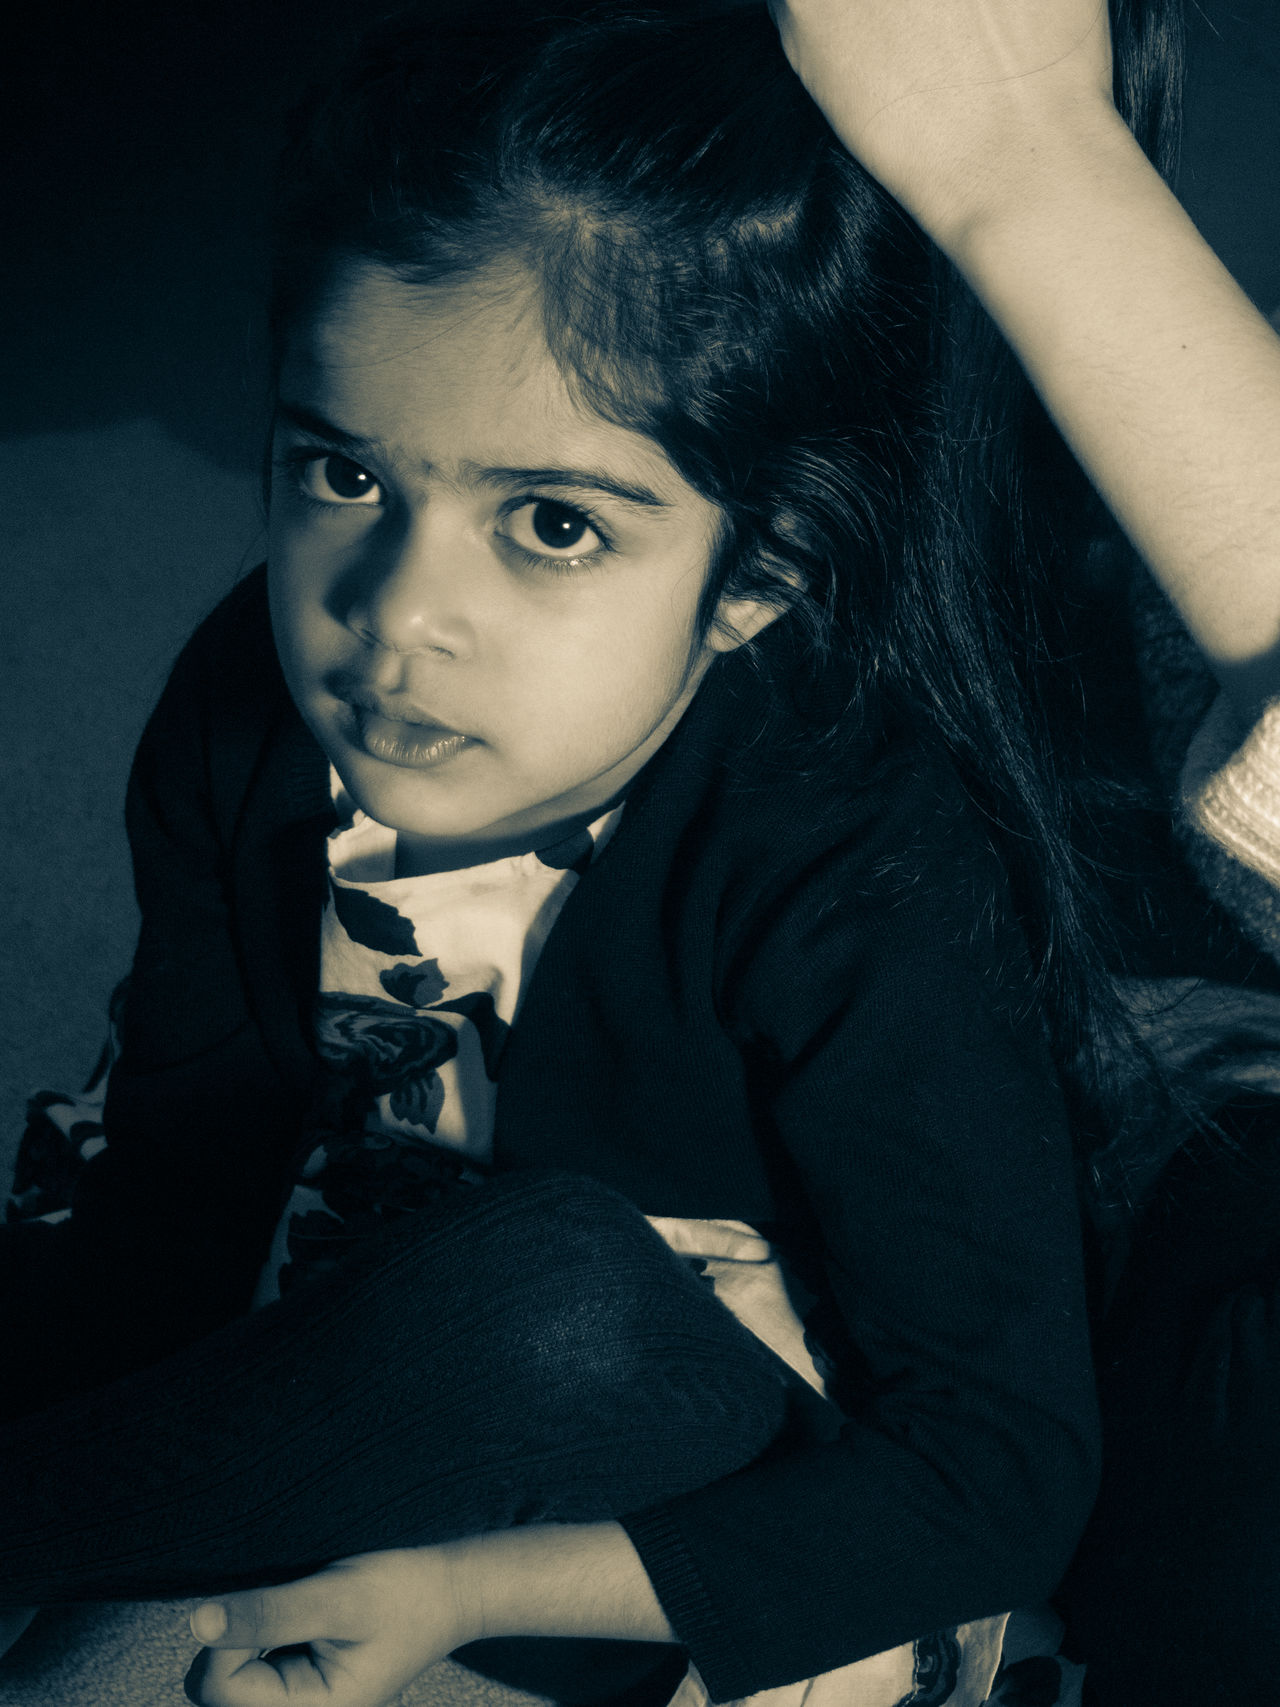 After the crying is over. Asian  Black Hair Child Childhood Close-up Crying Day Disciplined Elementary Age EyeEm Best Shots EyeEm Gallery EyeEmbestshots Eyeemcollection EyeEmPortraits Girls Indian Indoors  Looking At Camera People Portrait Real People Sitting Young Adult